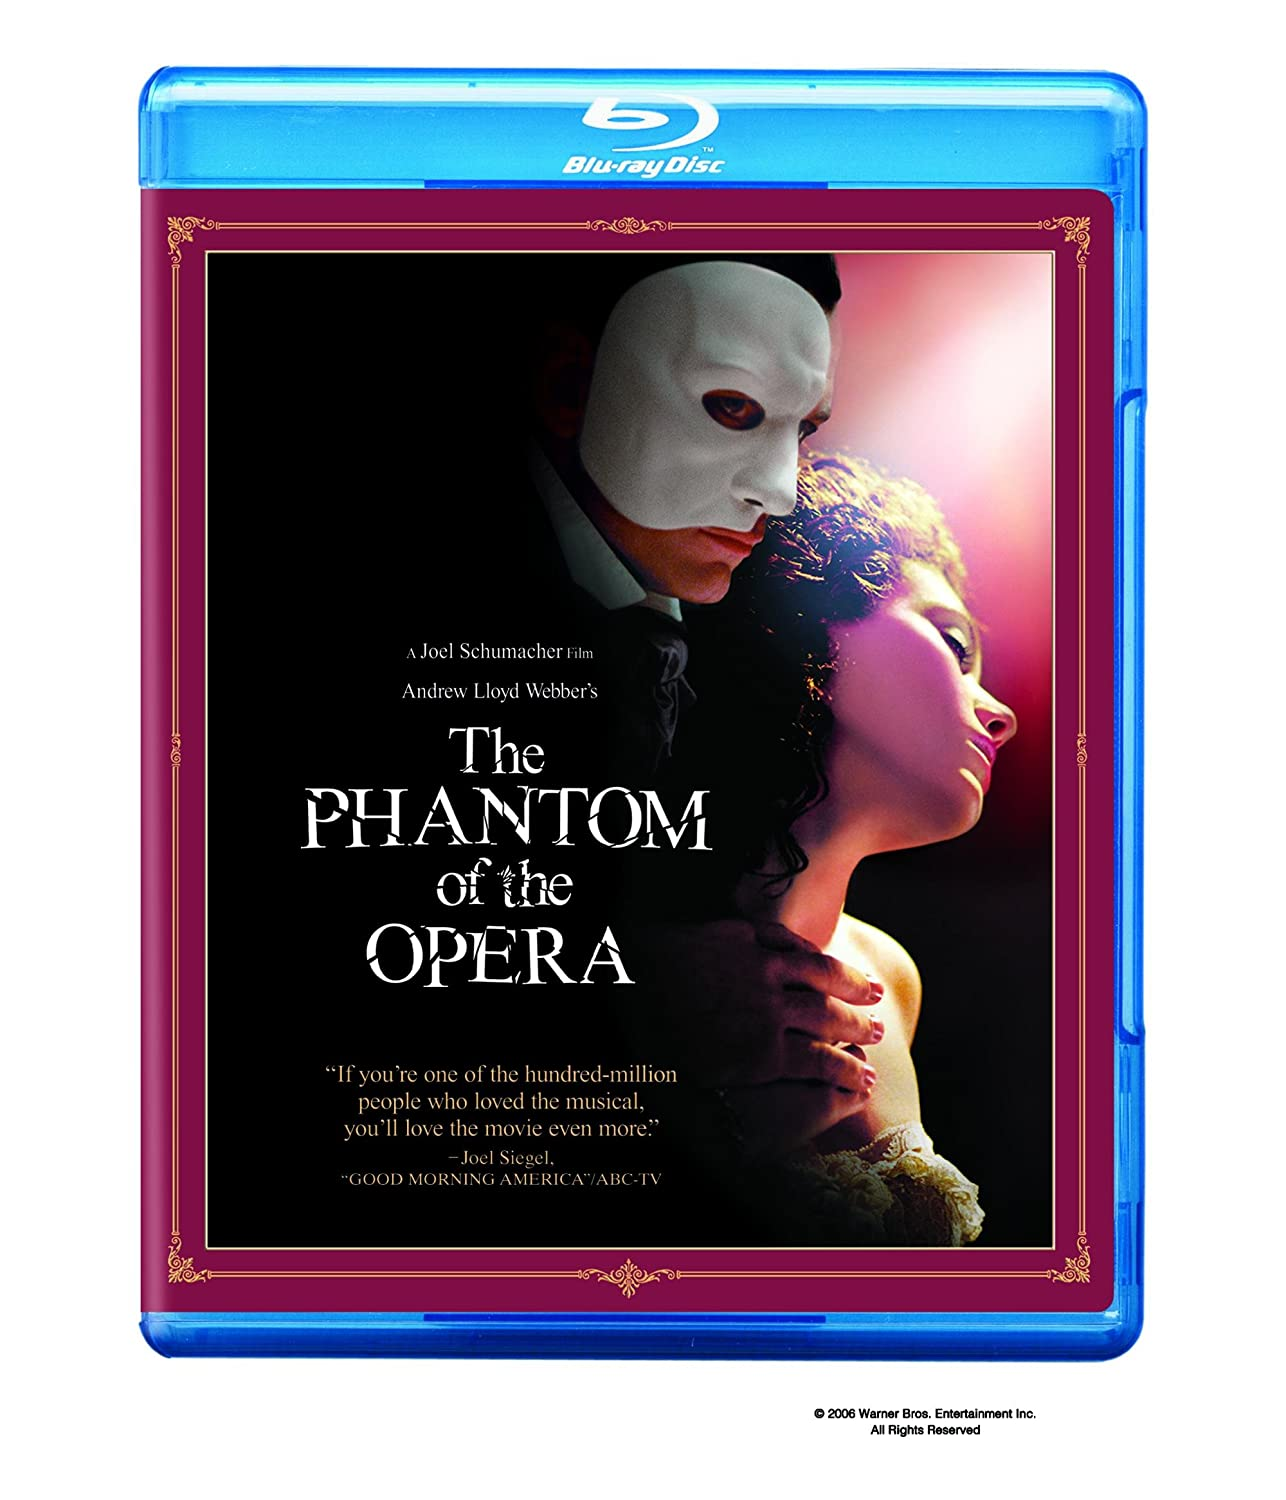 The Phantom Of The Opera Blu Ray Gerard Butler Emmy Rossum Patrick Wilson Minnie Driver Ciaran Hinds Miranda Richardson Simon Callow Paul Brooke Gavin Lee Murray Melvin Judith Paris James Fleet Kevin